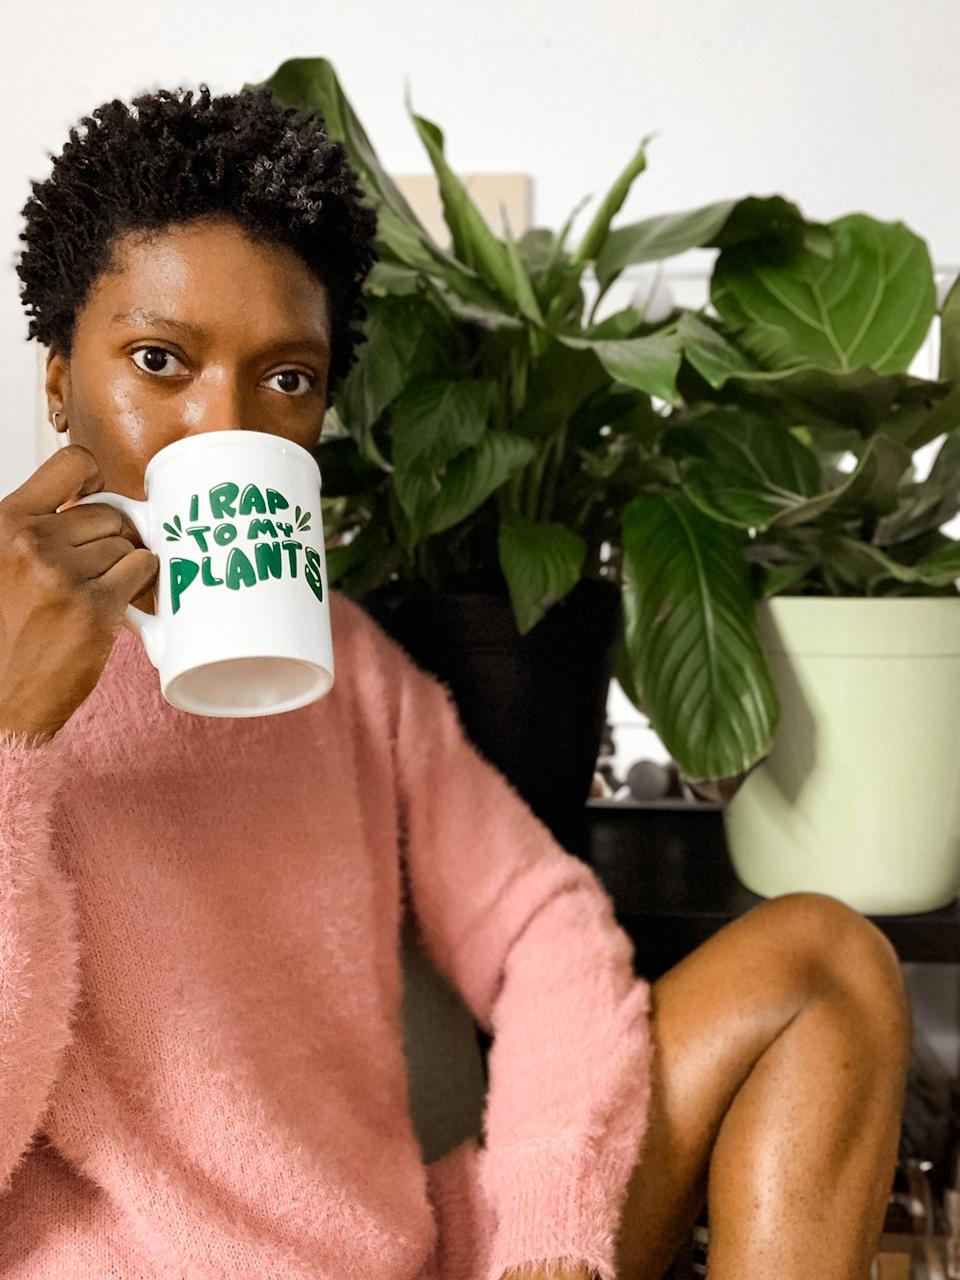 Dana Oliver is indulging her green thumb thanks to inspiration from #BlackGirlsWhoGarden. (Photo: Dana Oliver)